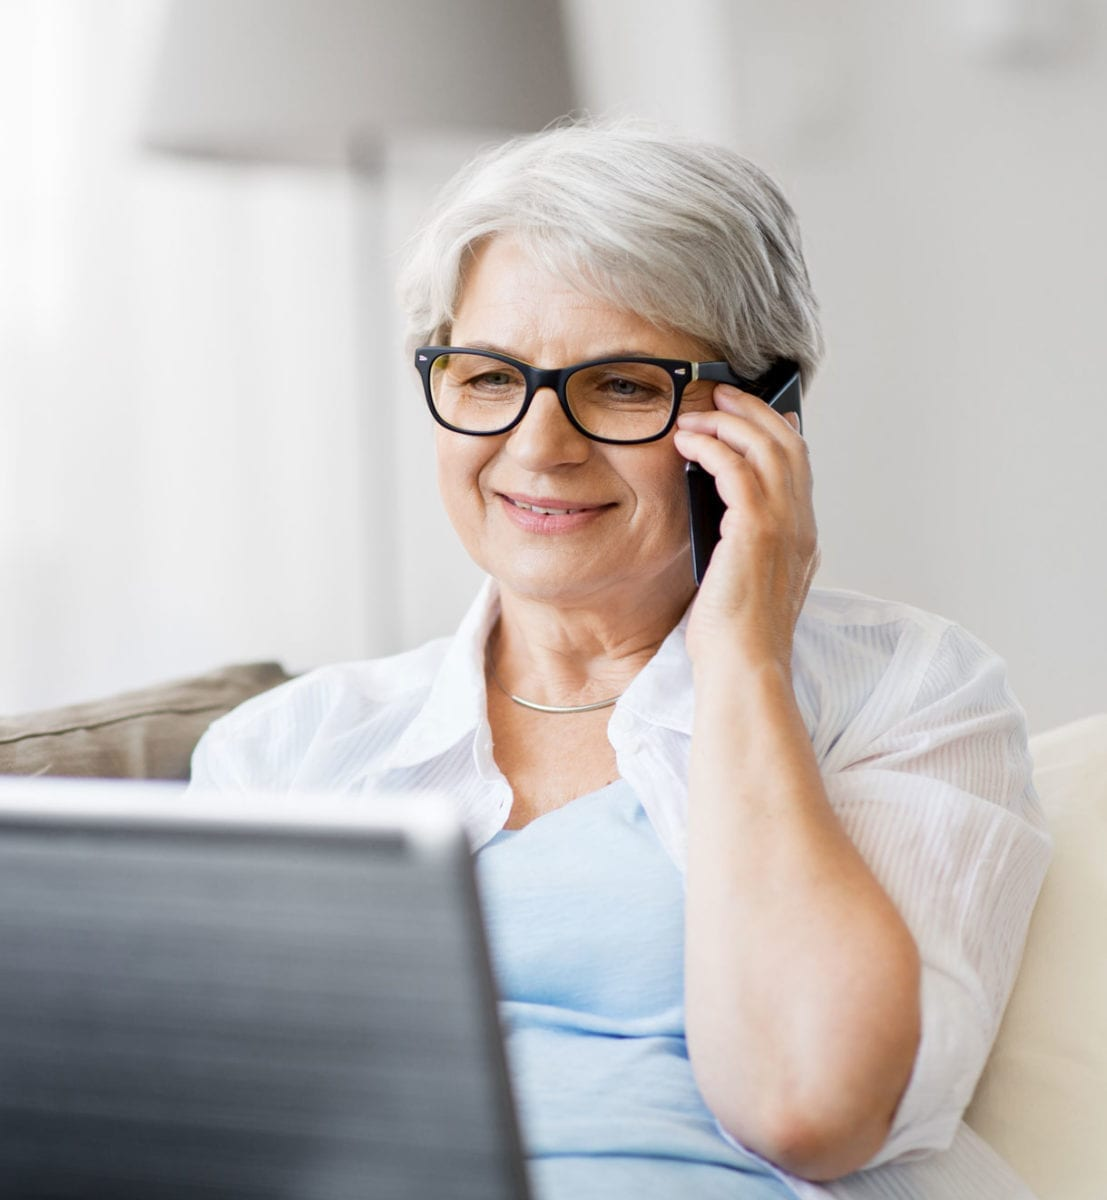 Senior woman in black glasses calls on cell phone while looking at computer.